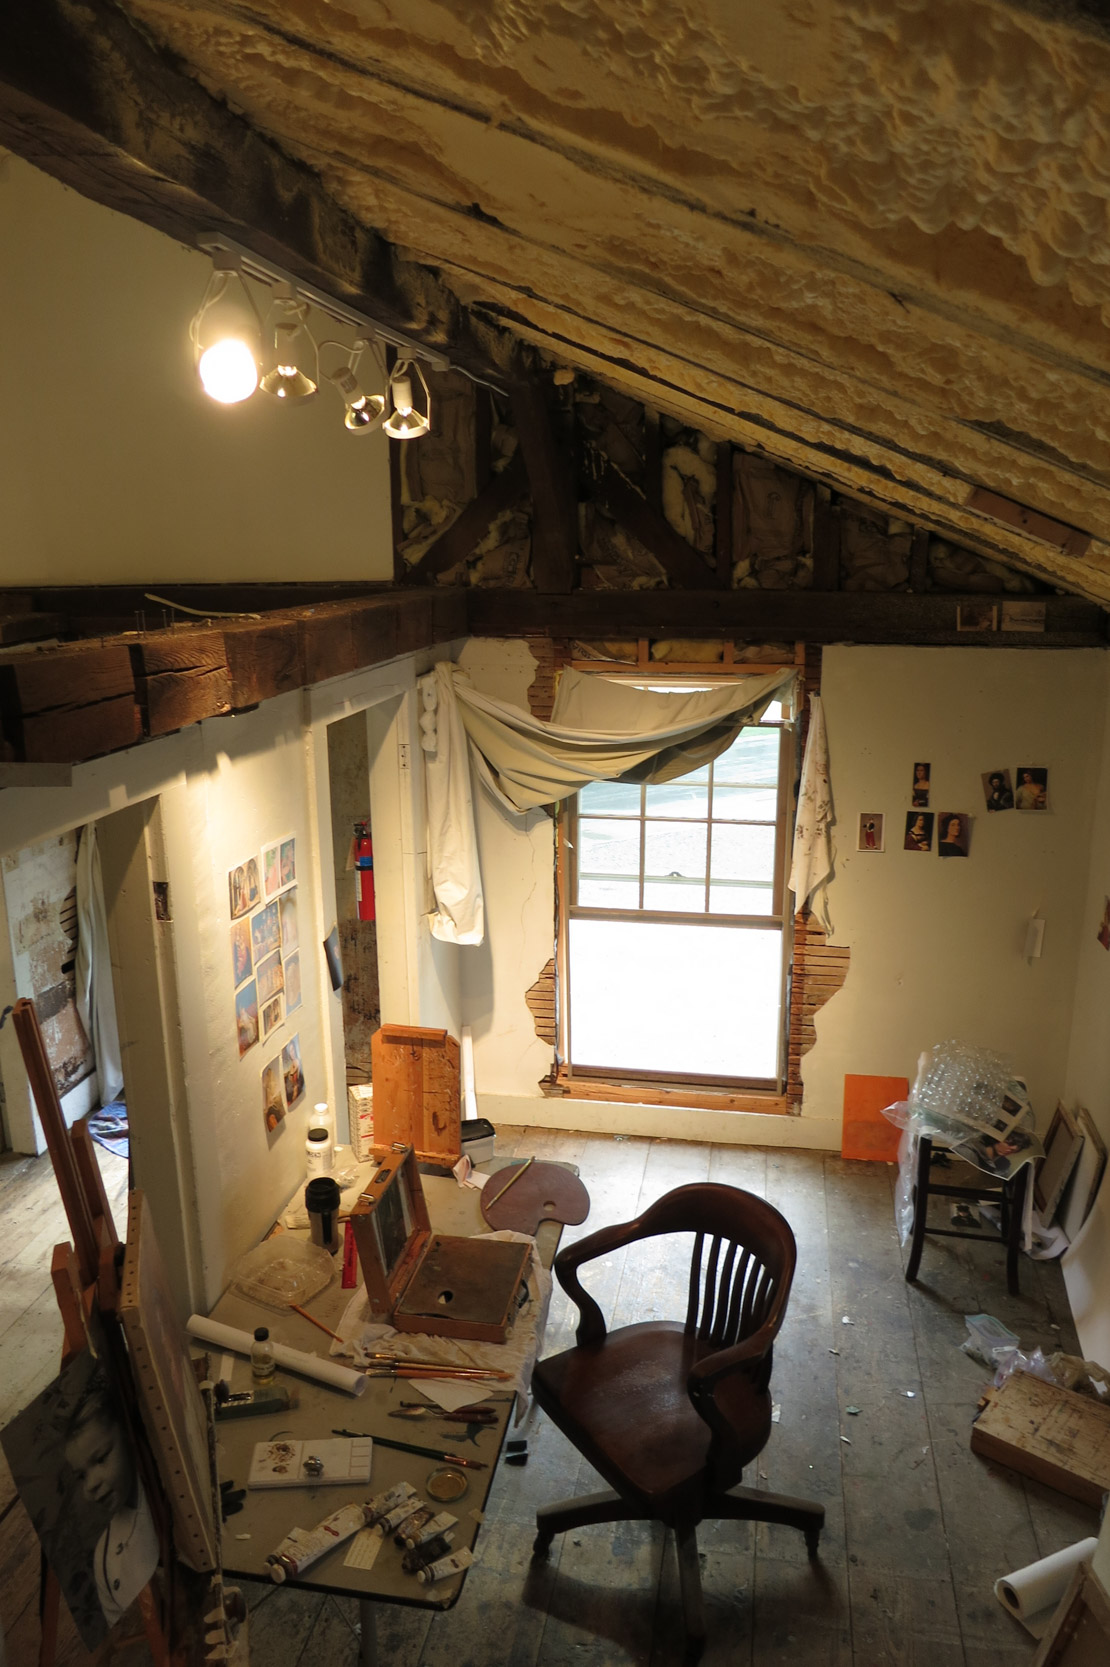 wassaic-project-location-maxon-mills-2012-09-09-03-55-28.jpg